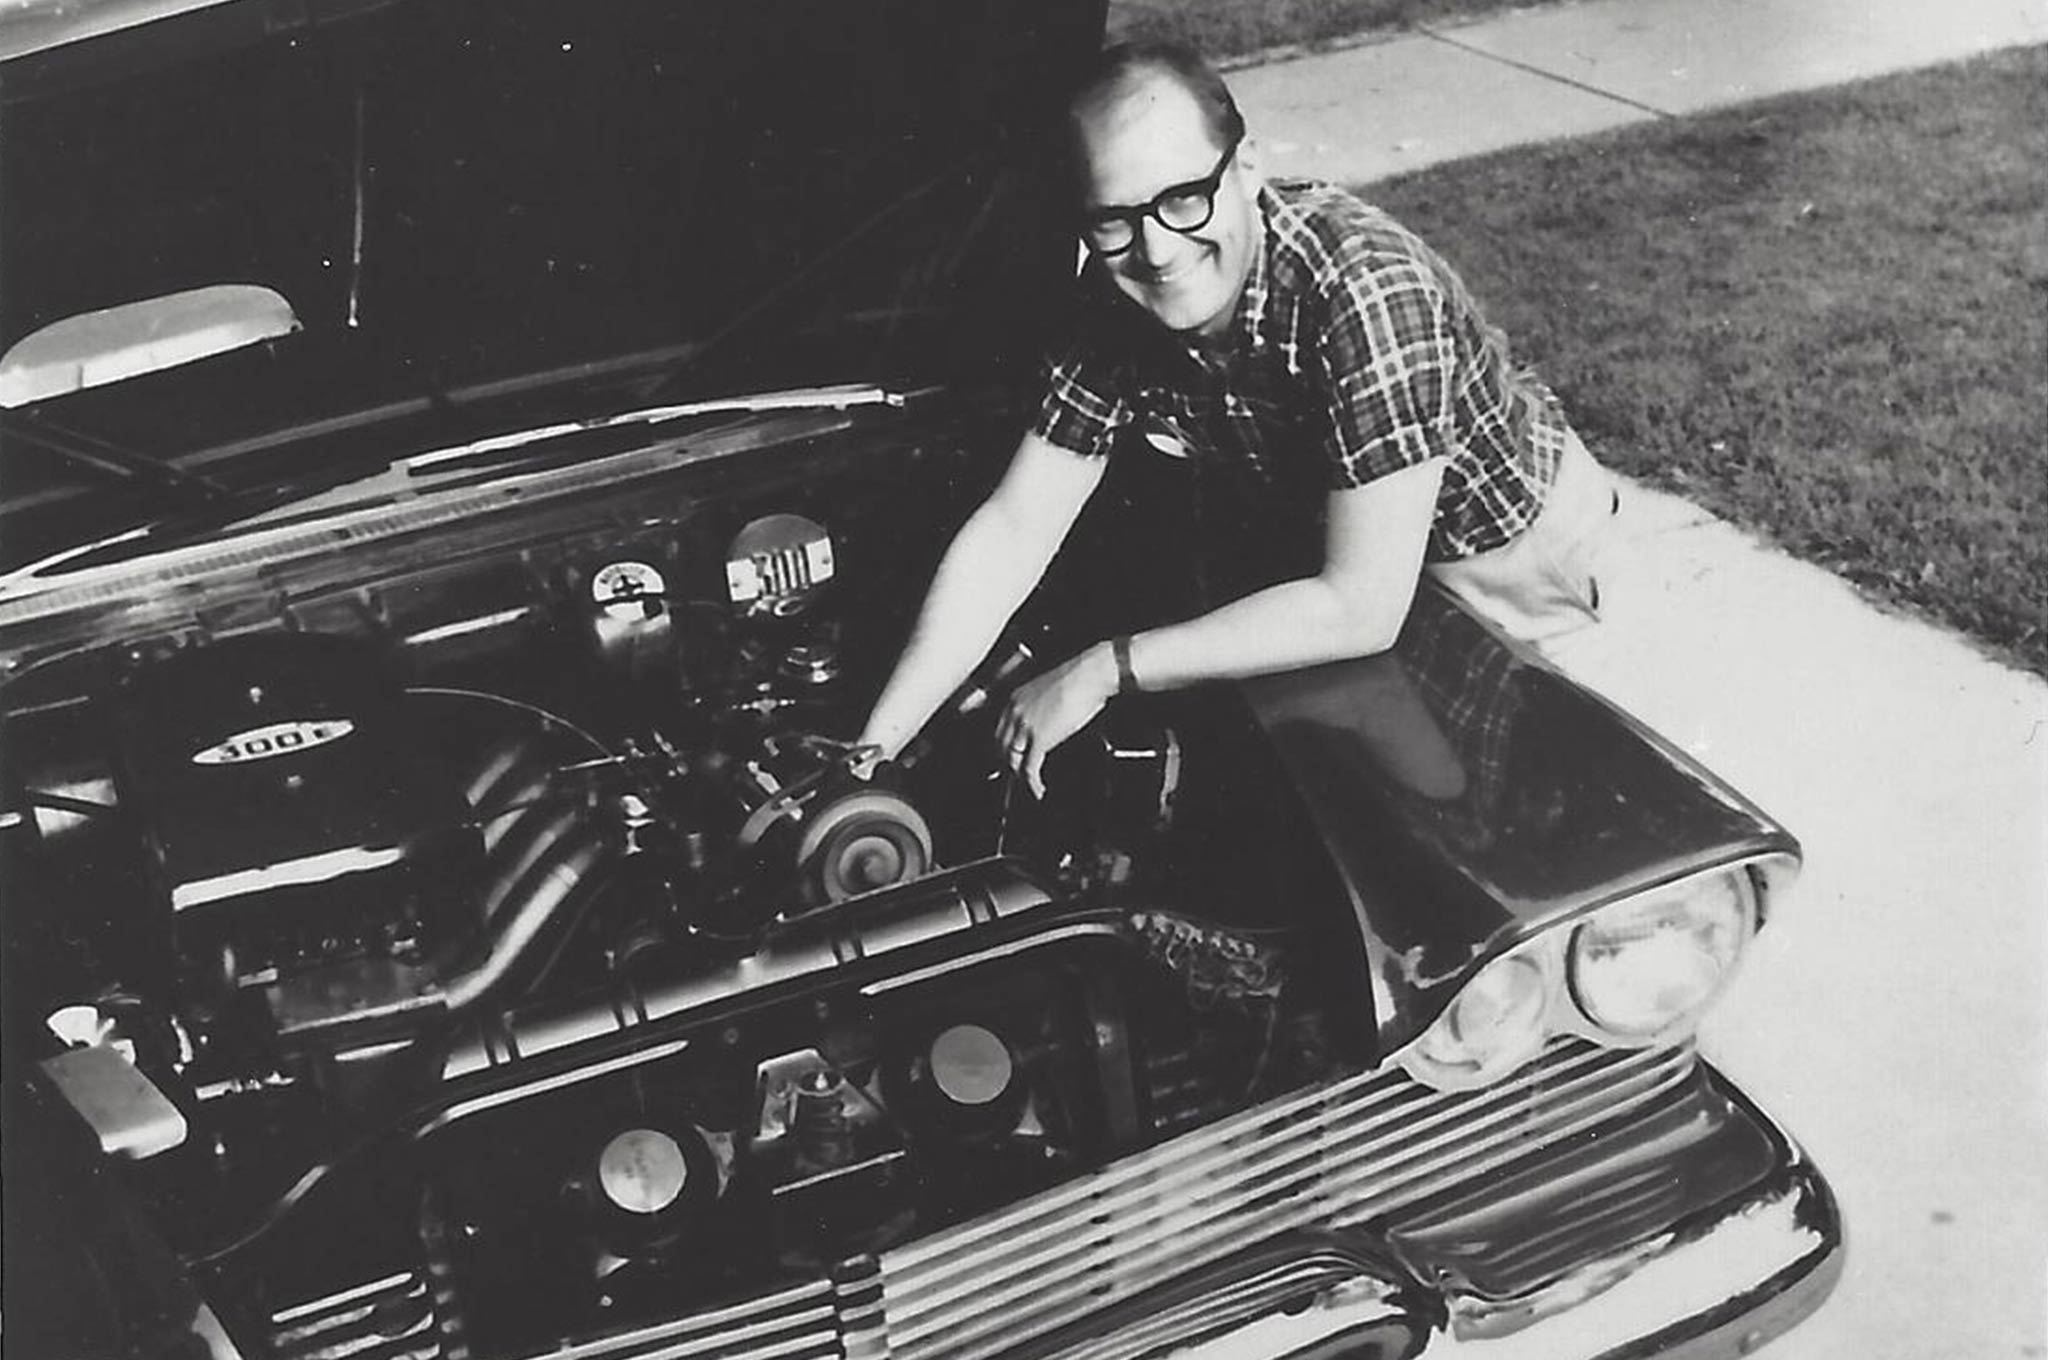 Tom with his 1957 Plymouth convertible and the EX32 392ci Hemi engine. This car featured a unique experimental ram outfit with four short tubes on one engine bank and four longer versions on another; it worked well enough to set the NHRA record in C/Gas in 1960.